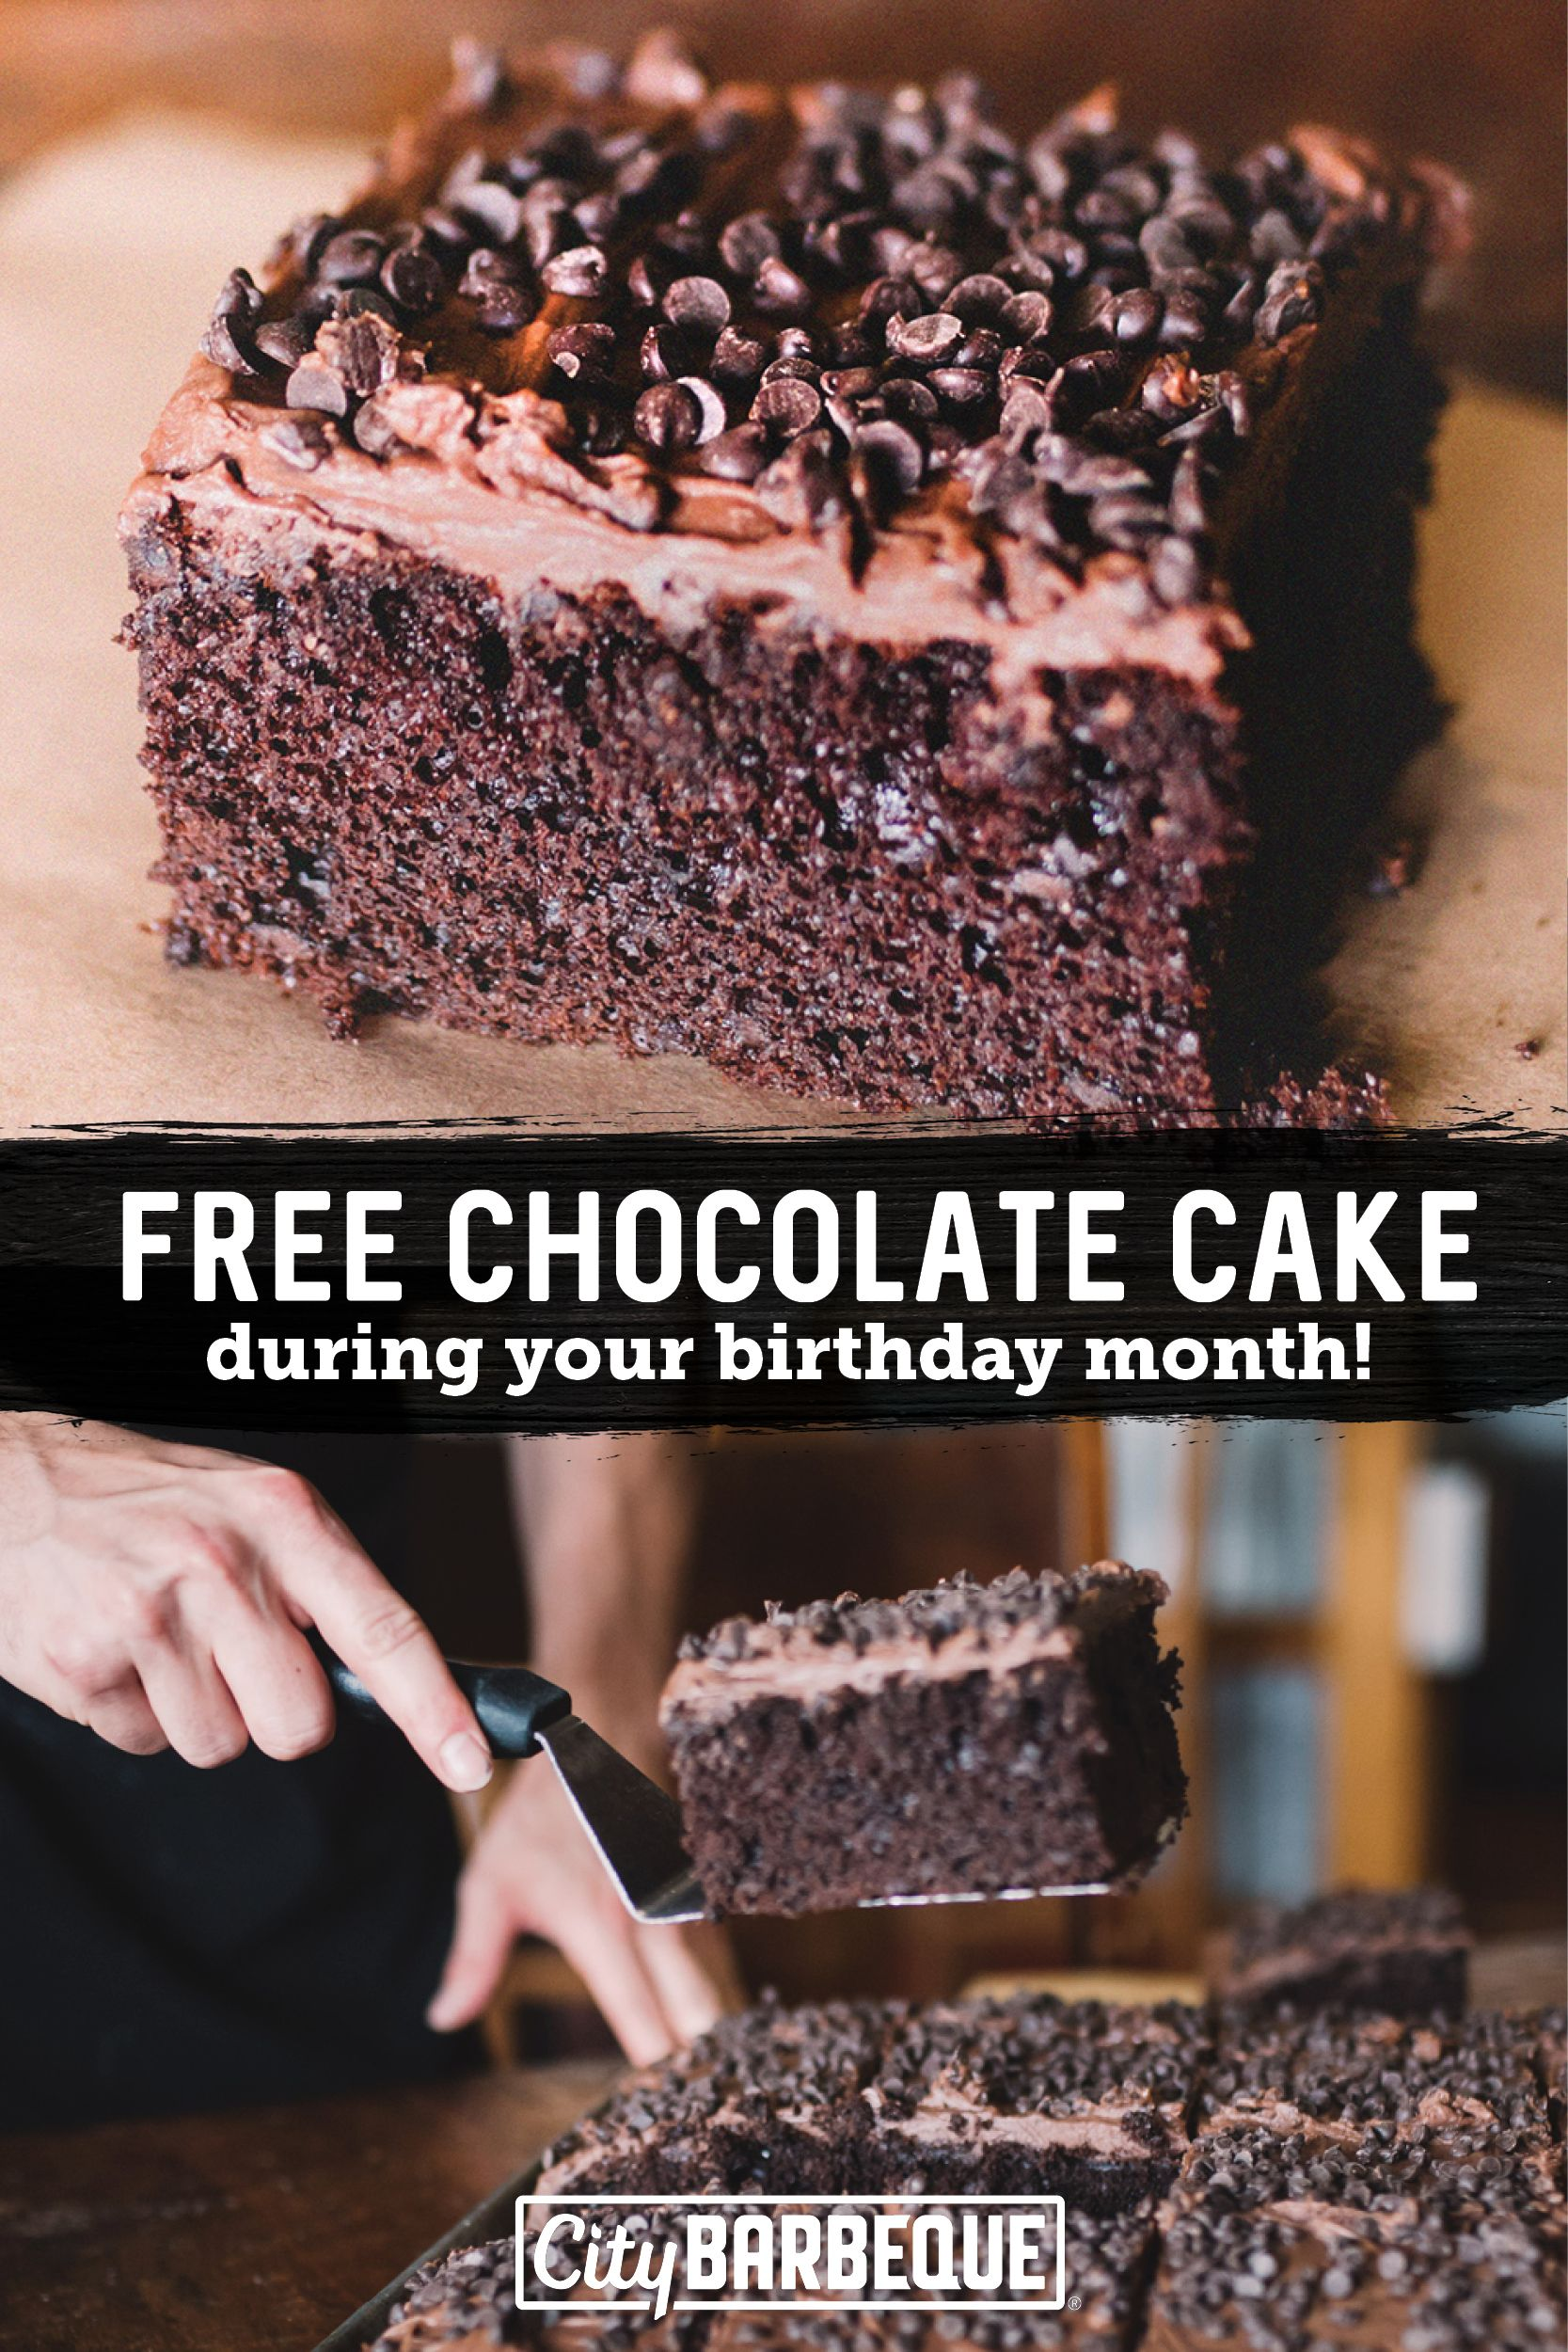 Earn 1 Point For Every Dollar Spent On Qualifying Purchases When You Scan Your City Rewards App Or Let Us Triple Chocolate Cake Chocolate Cake Chocolate Icing